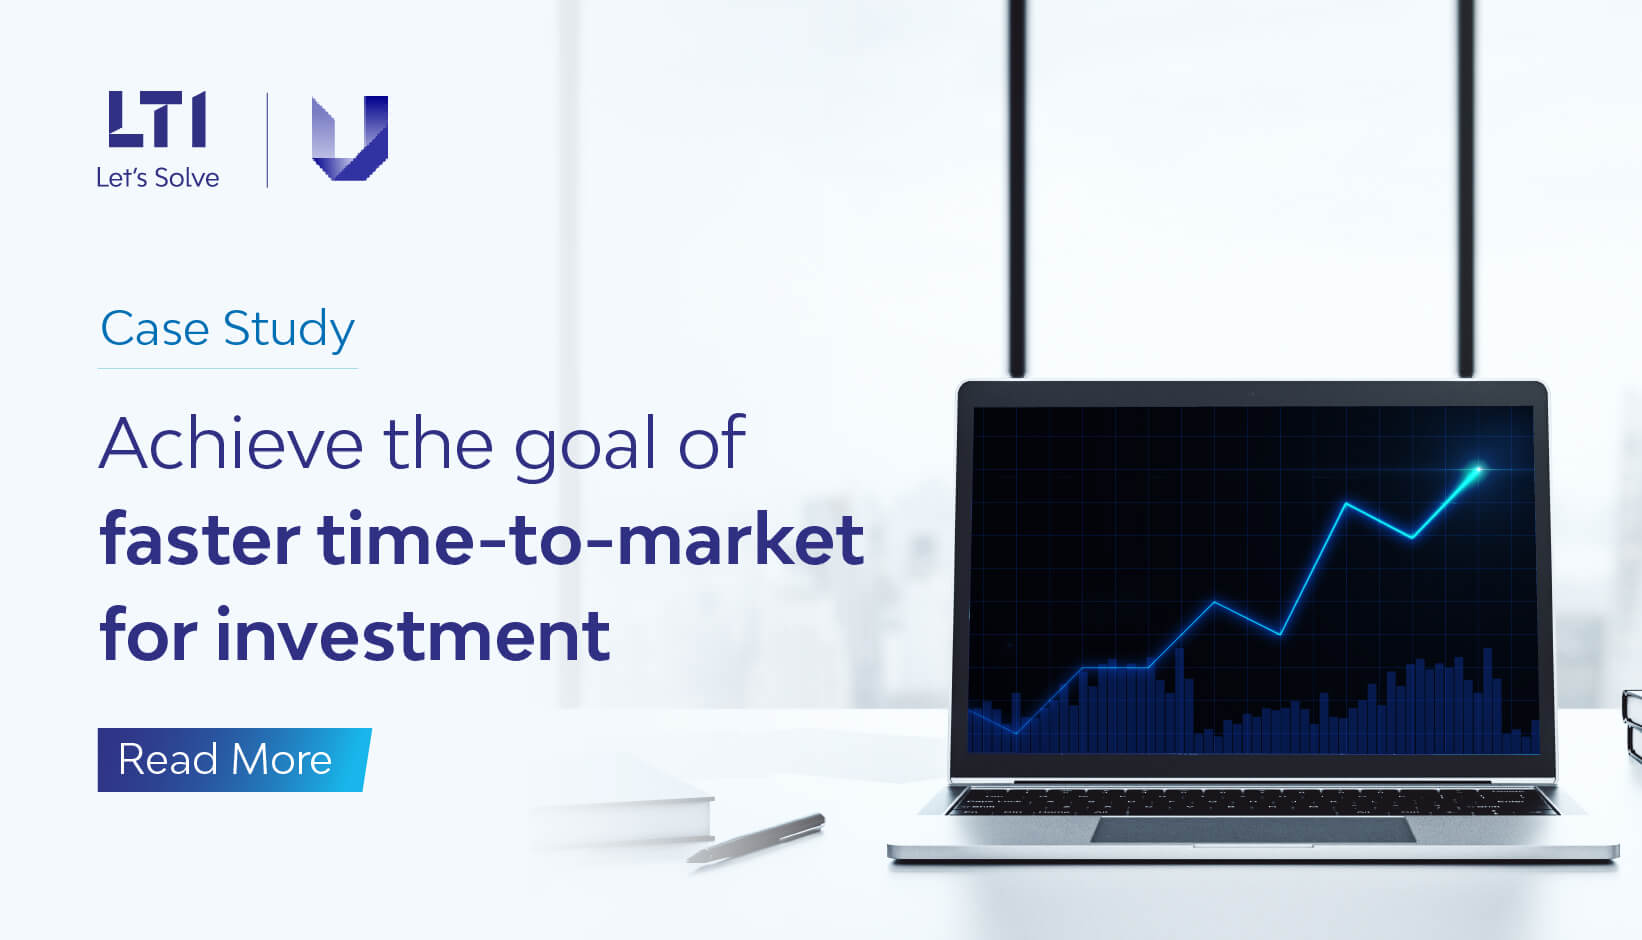 Achieve the goal of faster time-to-market for investment